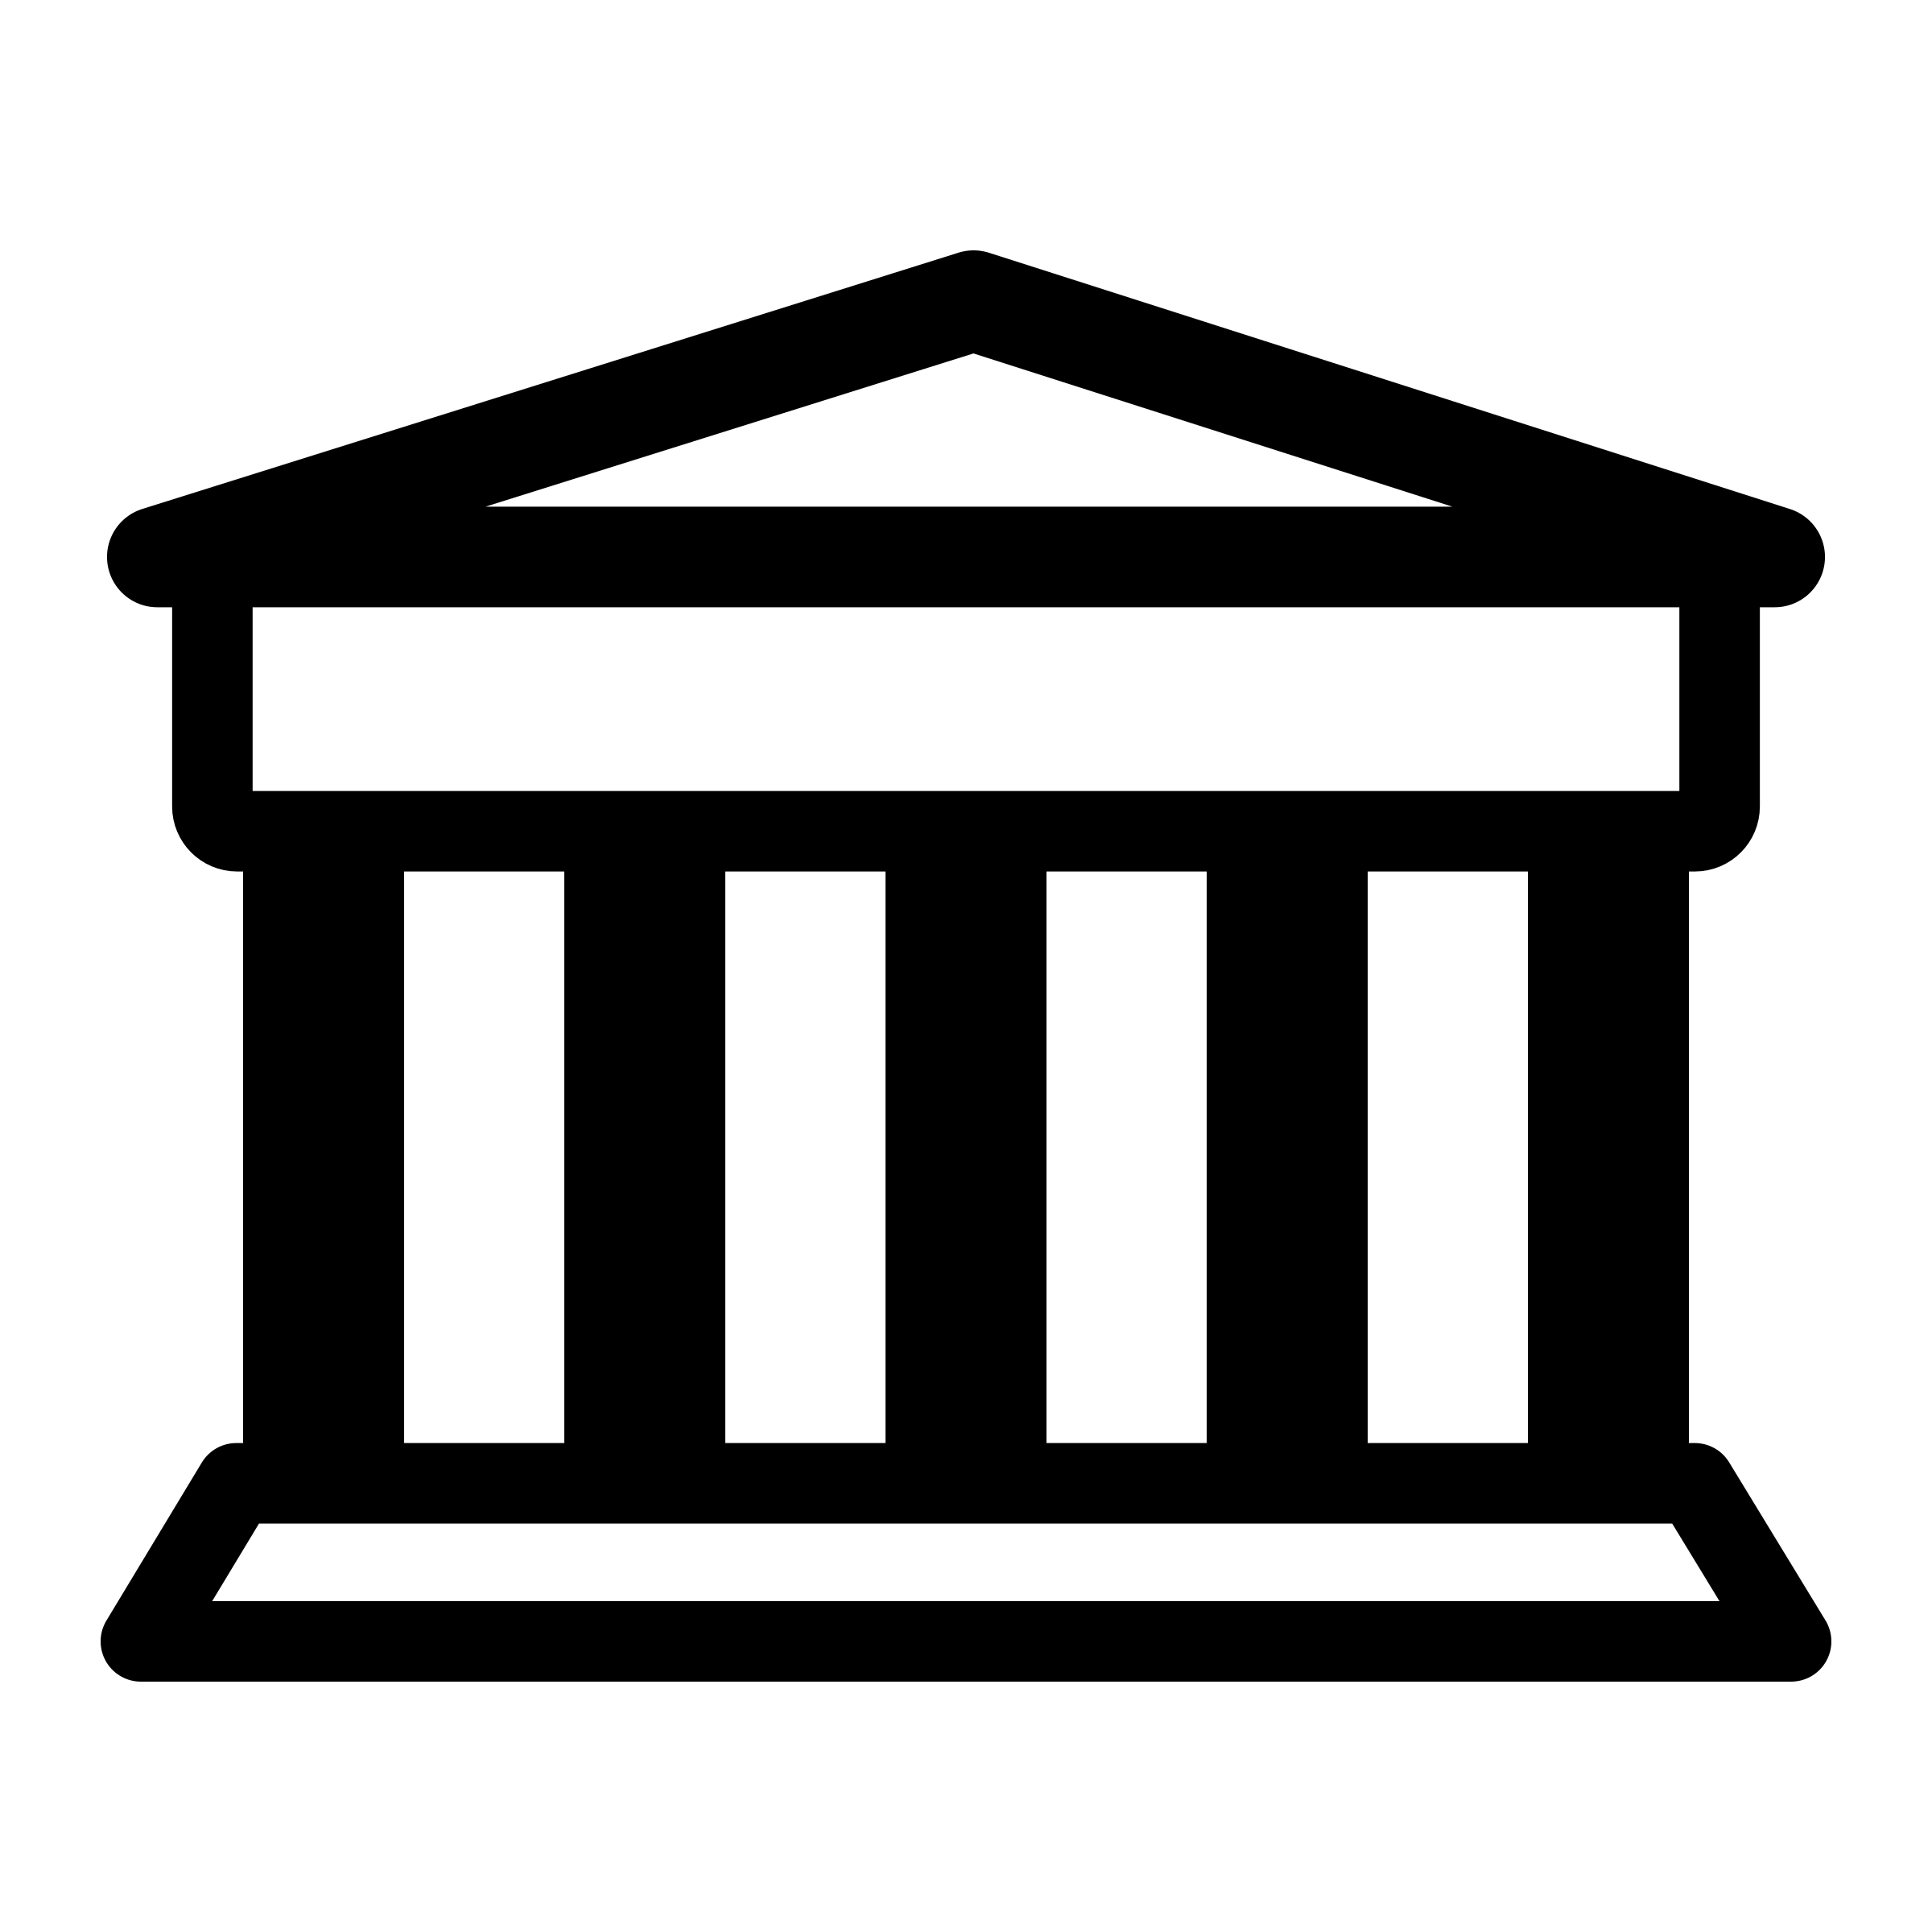 Bank letters format clip. Courthouse clipart black and white